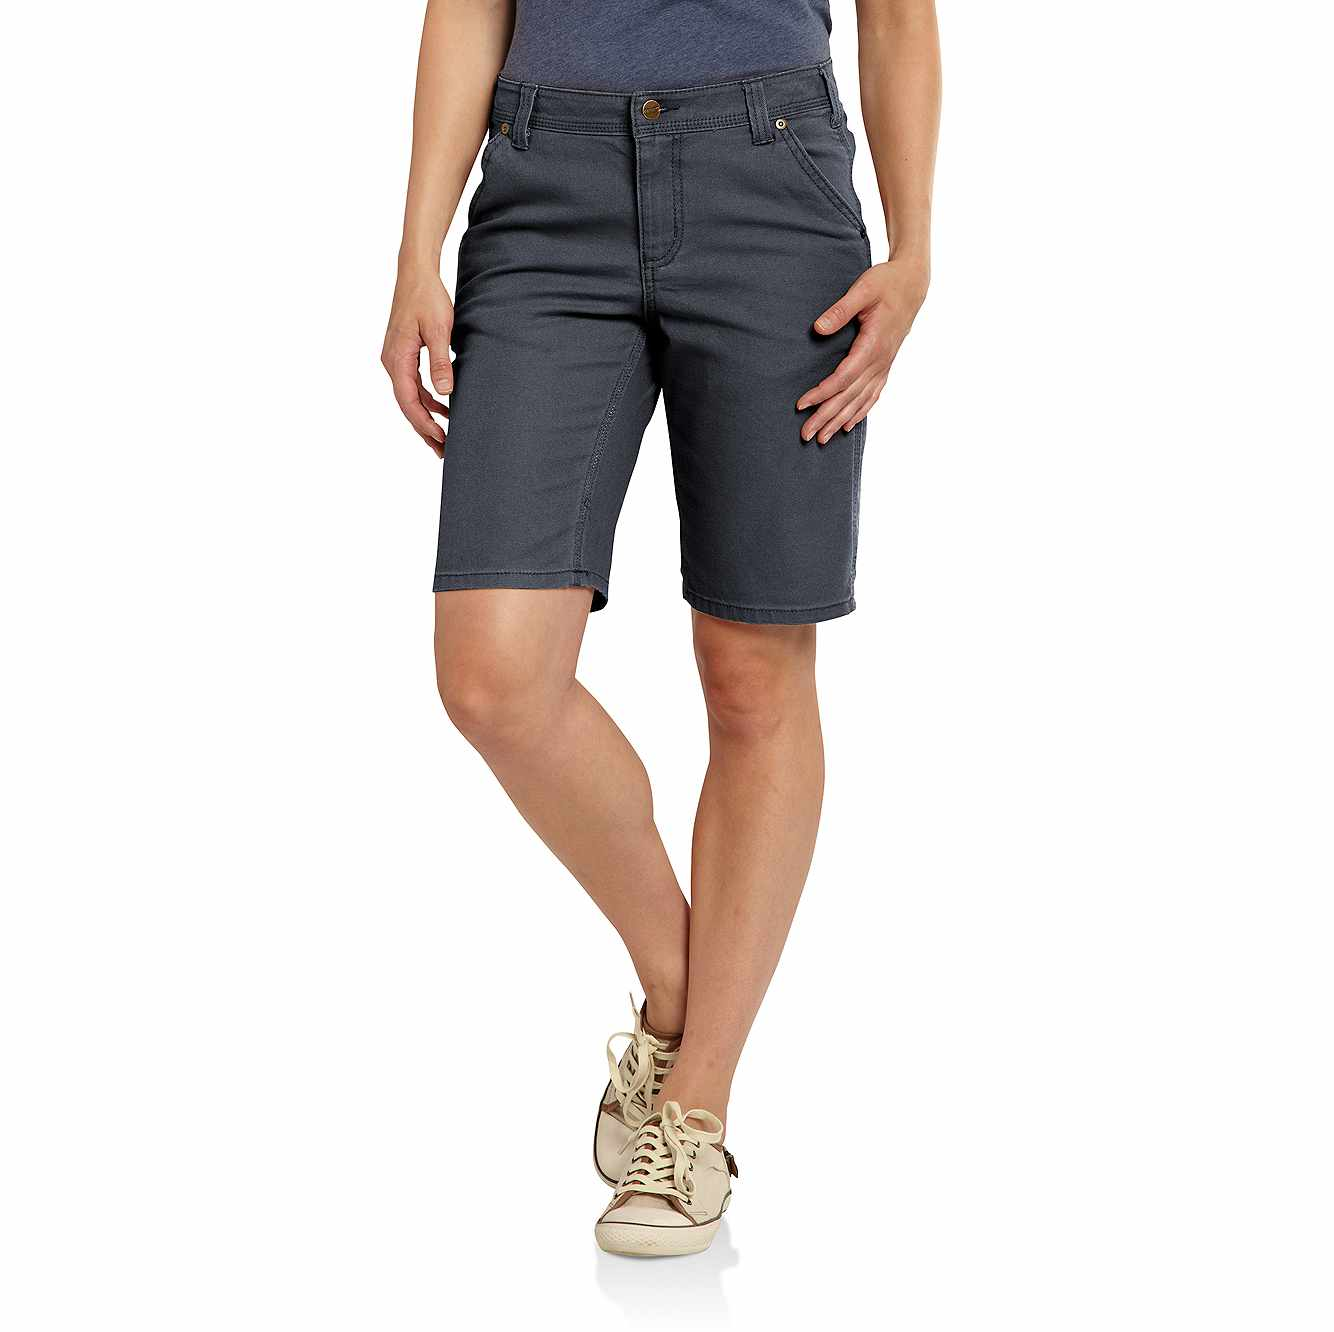 Picture of Crawford Canvas Work Short in Coal